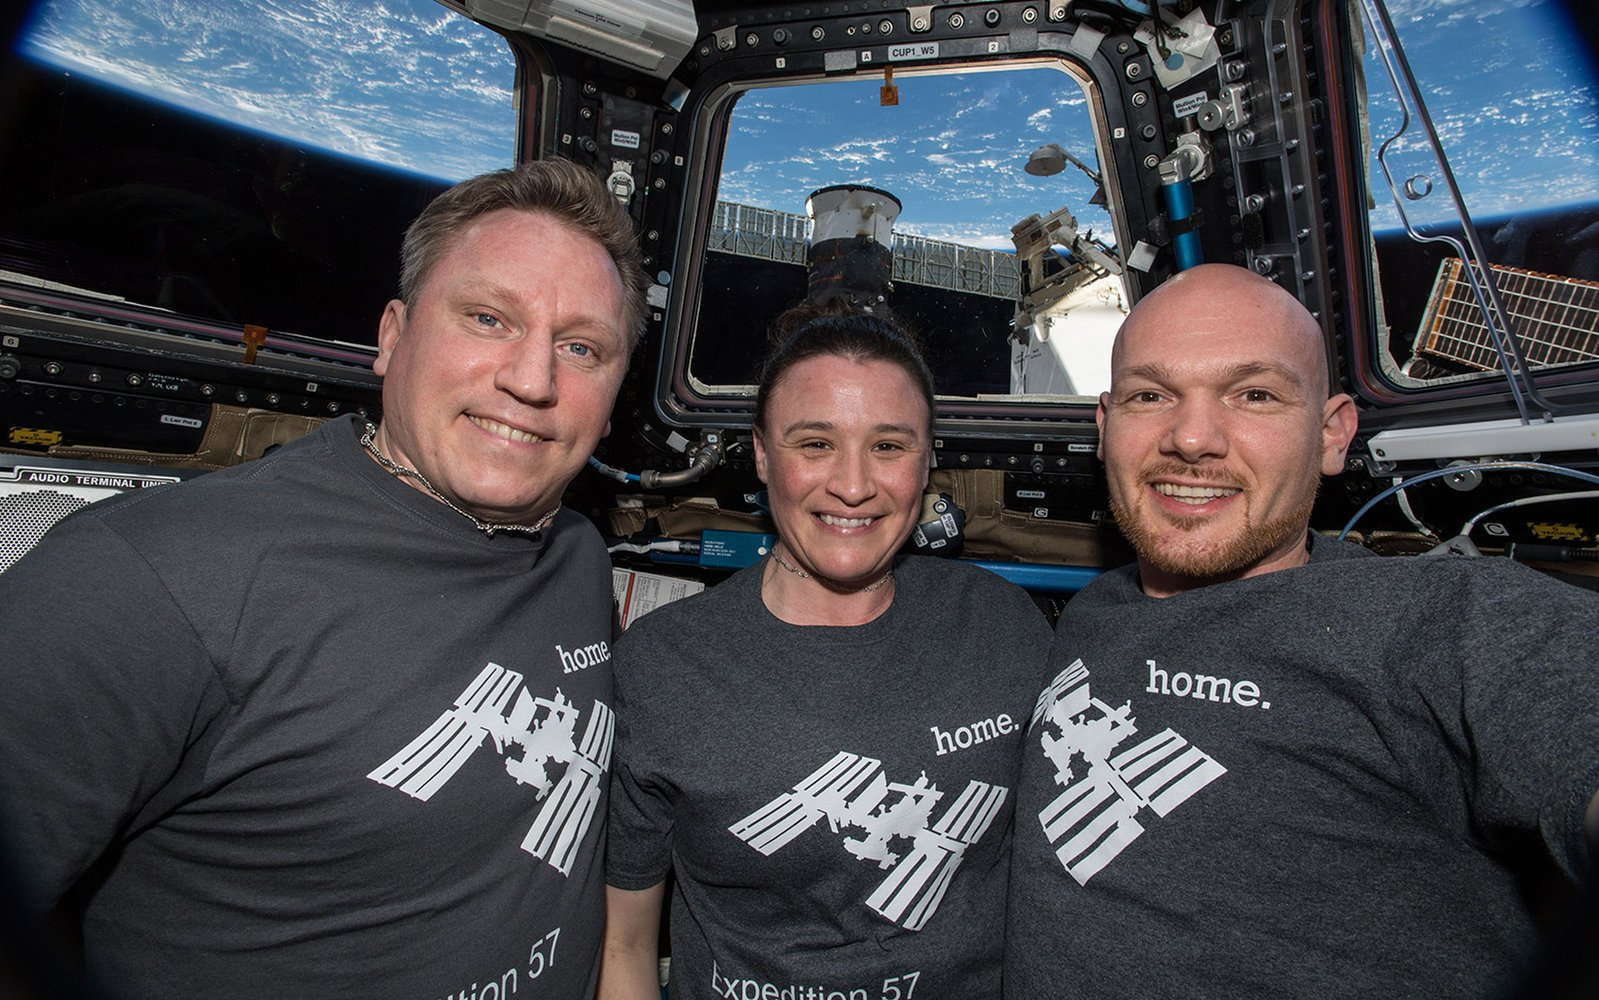 Expedition 57: The Space Station Mission in Photos https://t.co/rD3ISv39NT https://t.co/qVKRJnEZSl